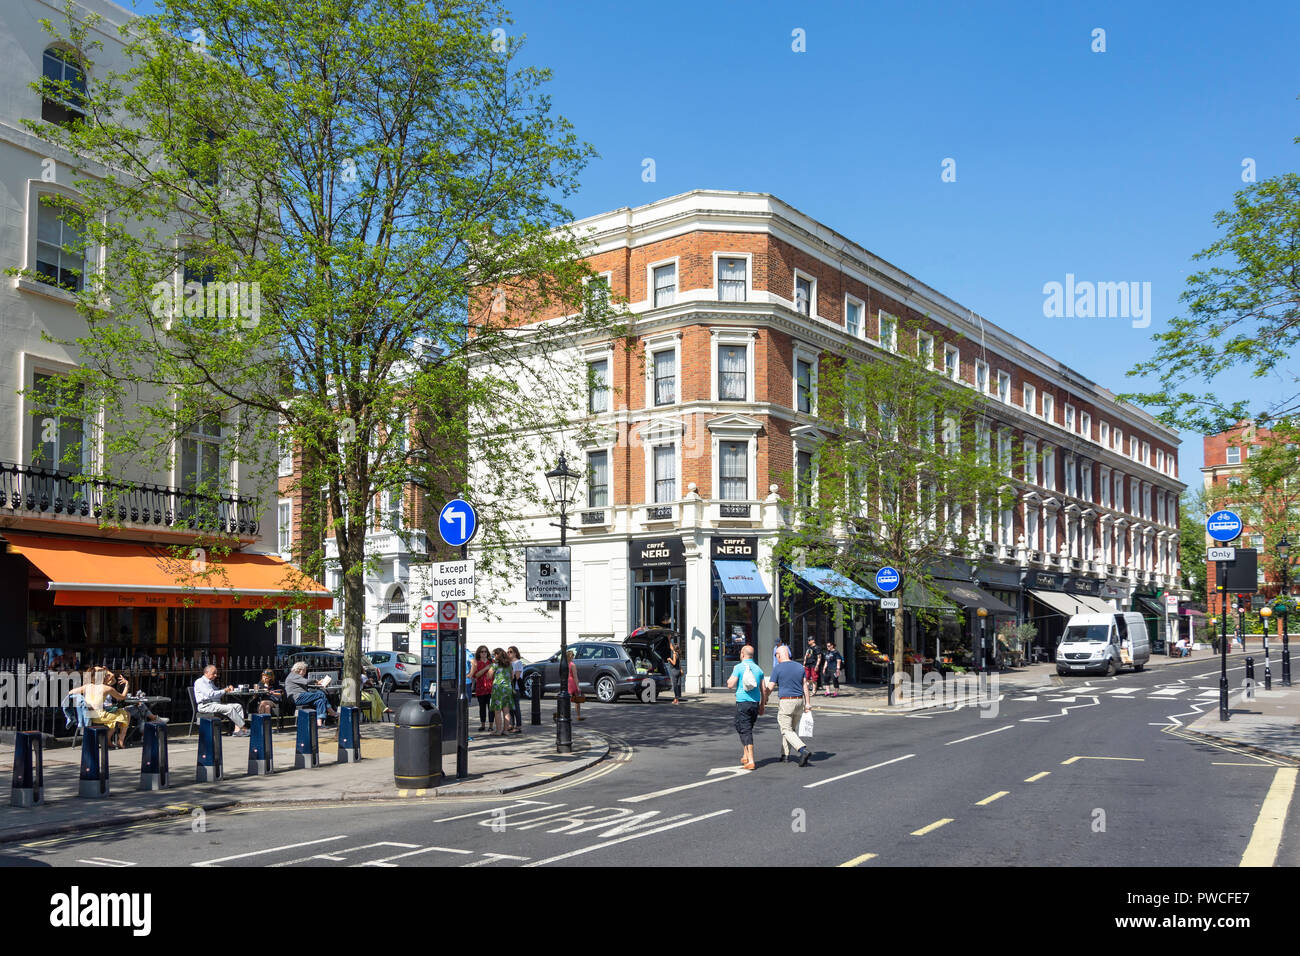 Clifton Road, Little Venice, Maida Vale, City of Westminster, Greater London, England, United Kingdom - Stock Image